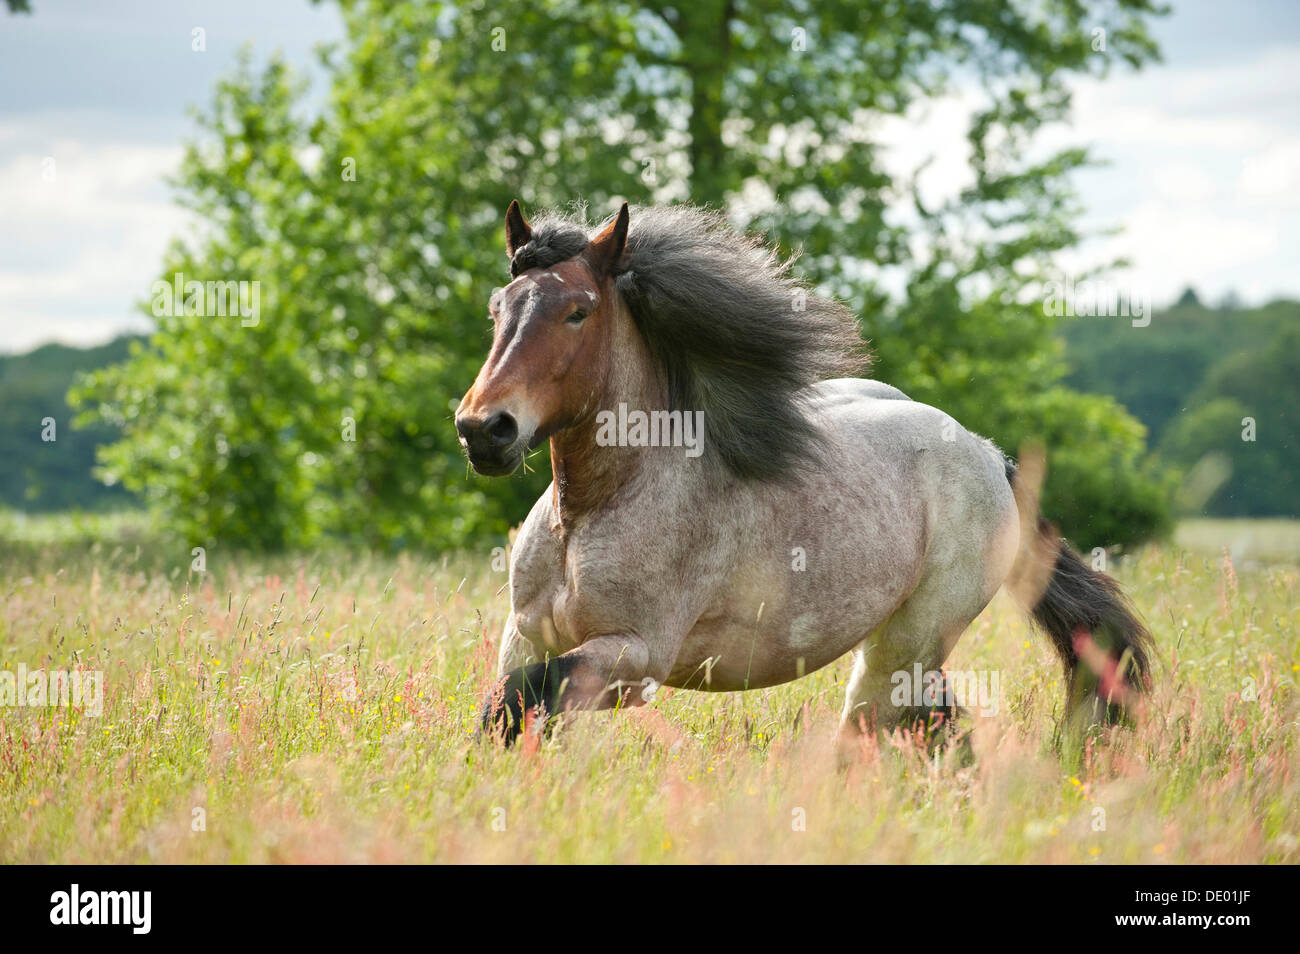 Belgian Draft horse galloping across a meadow - Stock Image